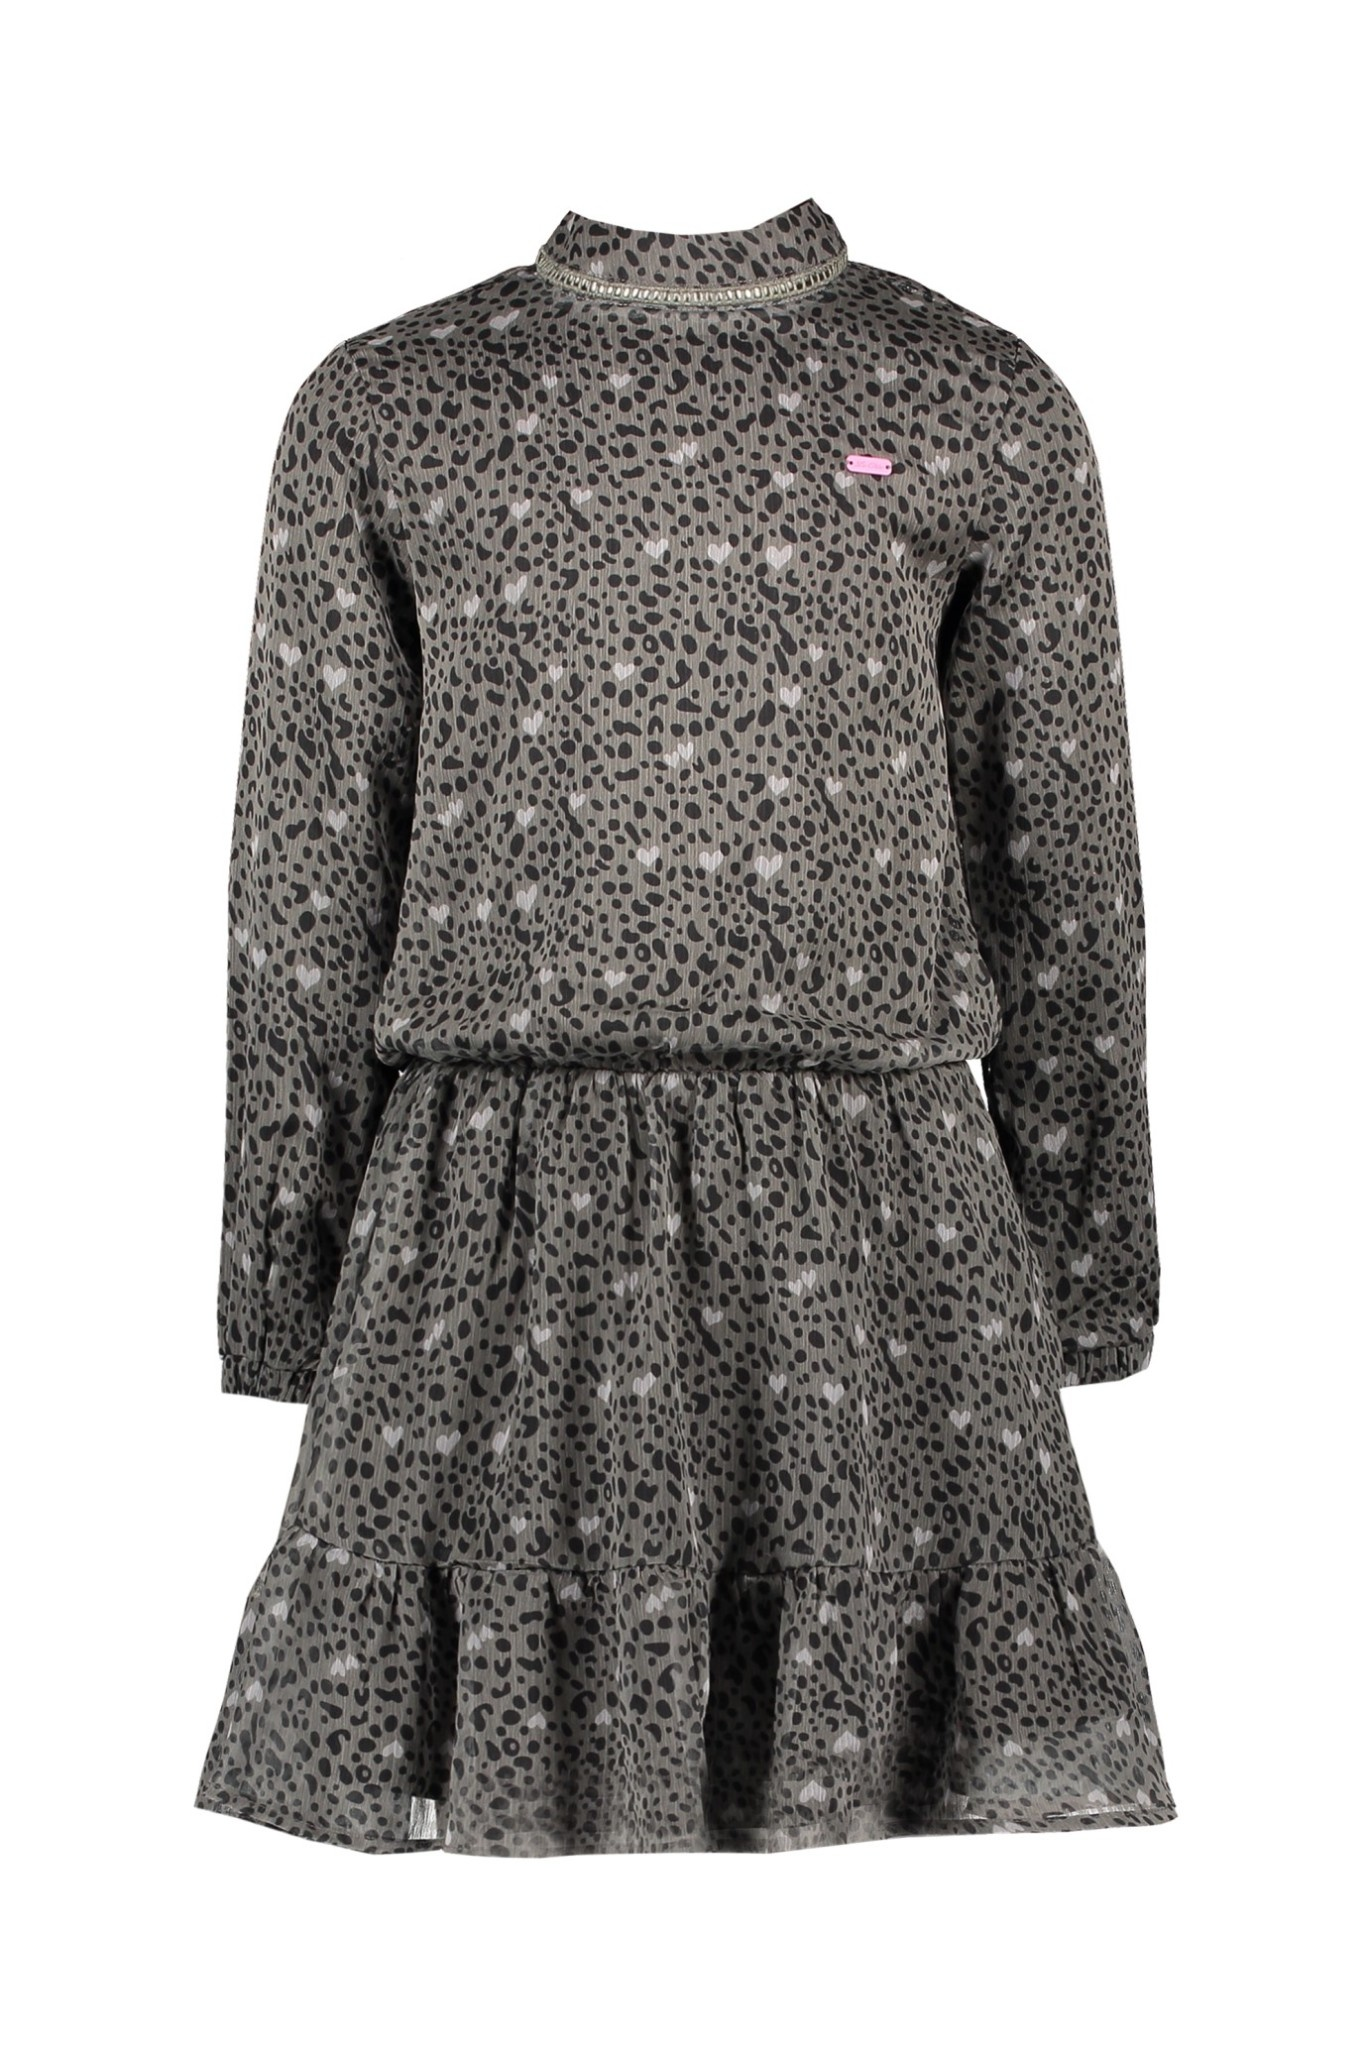 Shelby Hearts and Dots Dress